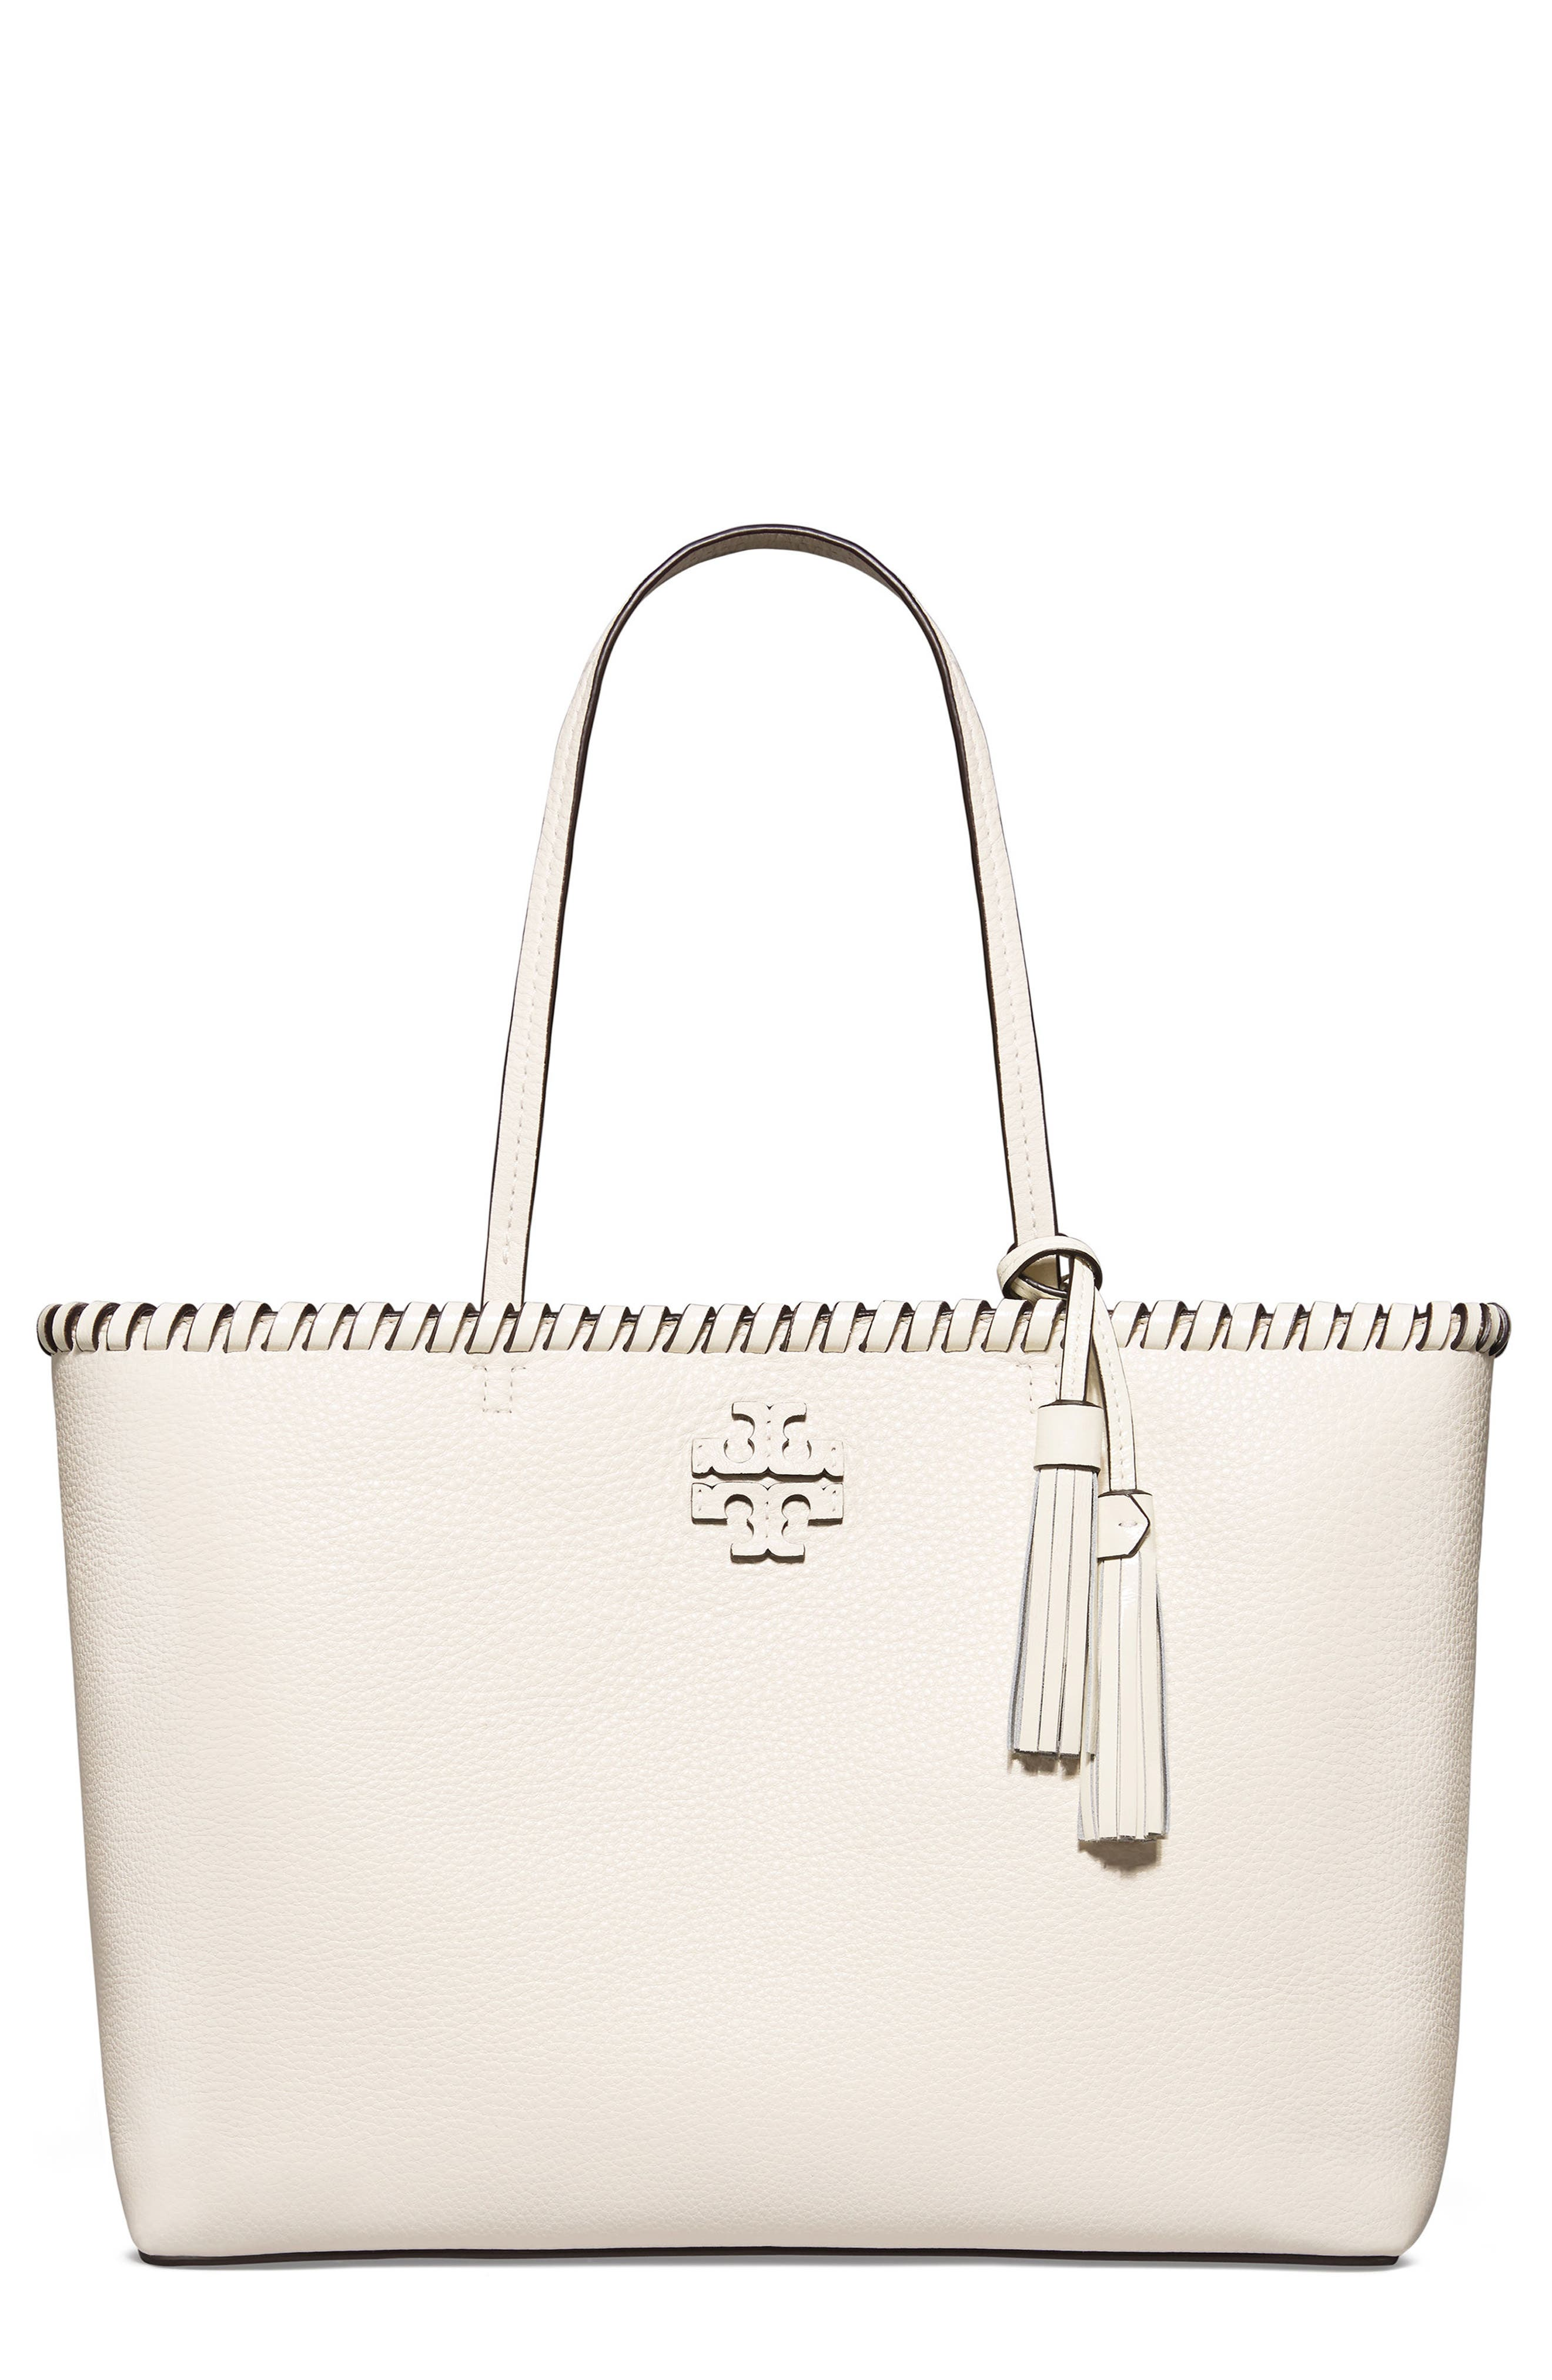 McGraw Whipstitch Leather Tote,                             Main thumbnail 1, color,                             100